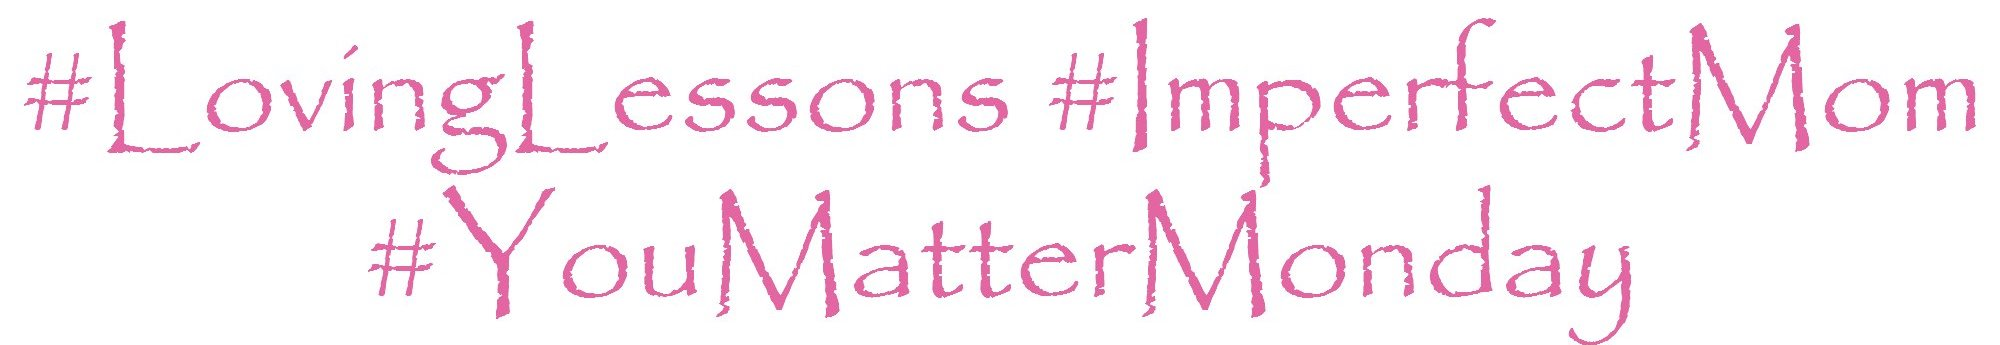 You-Matter-Monday-Hashtag-Loving-Lessons